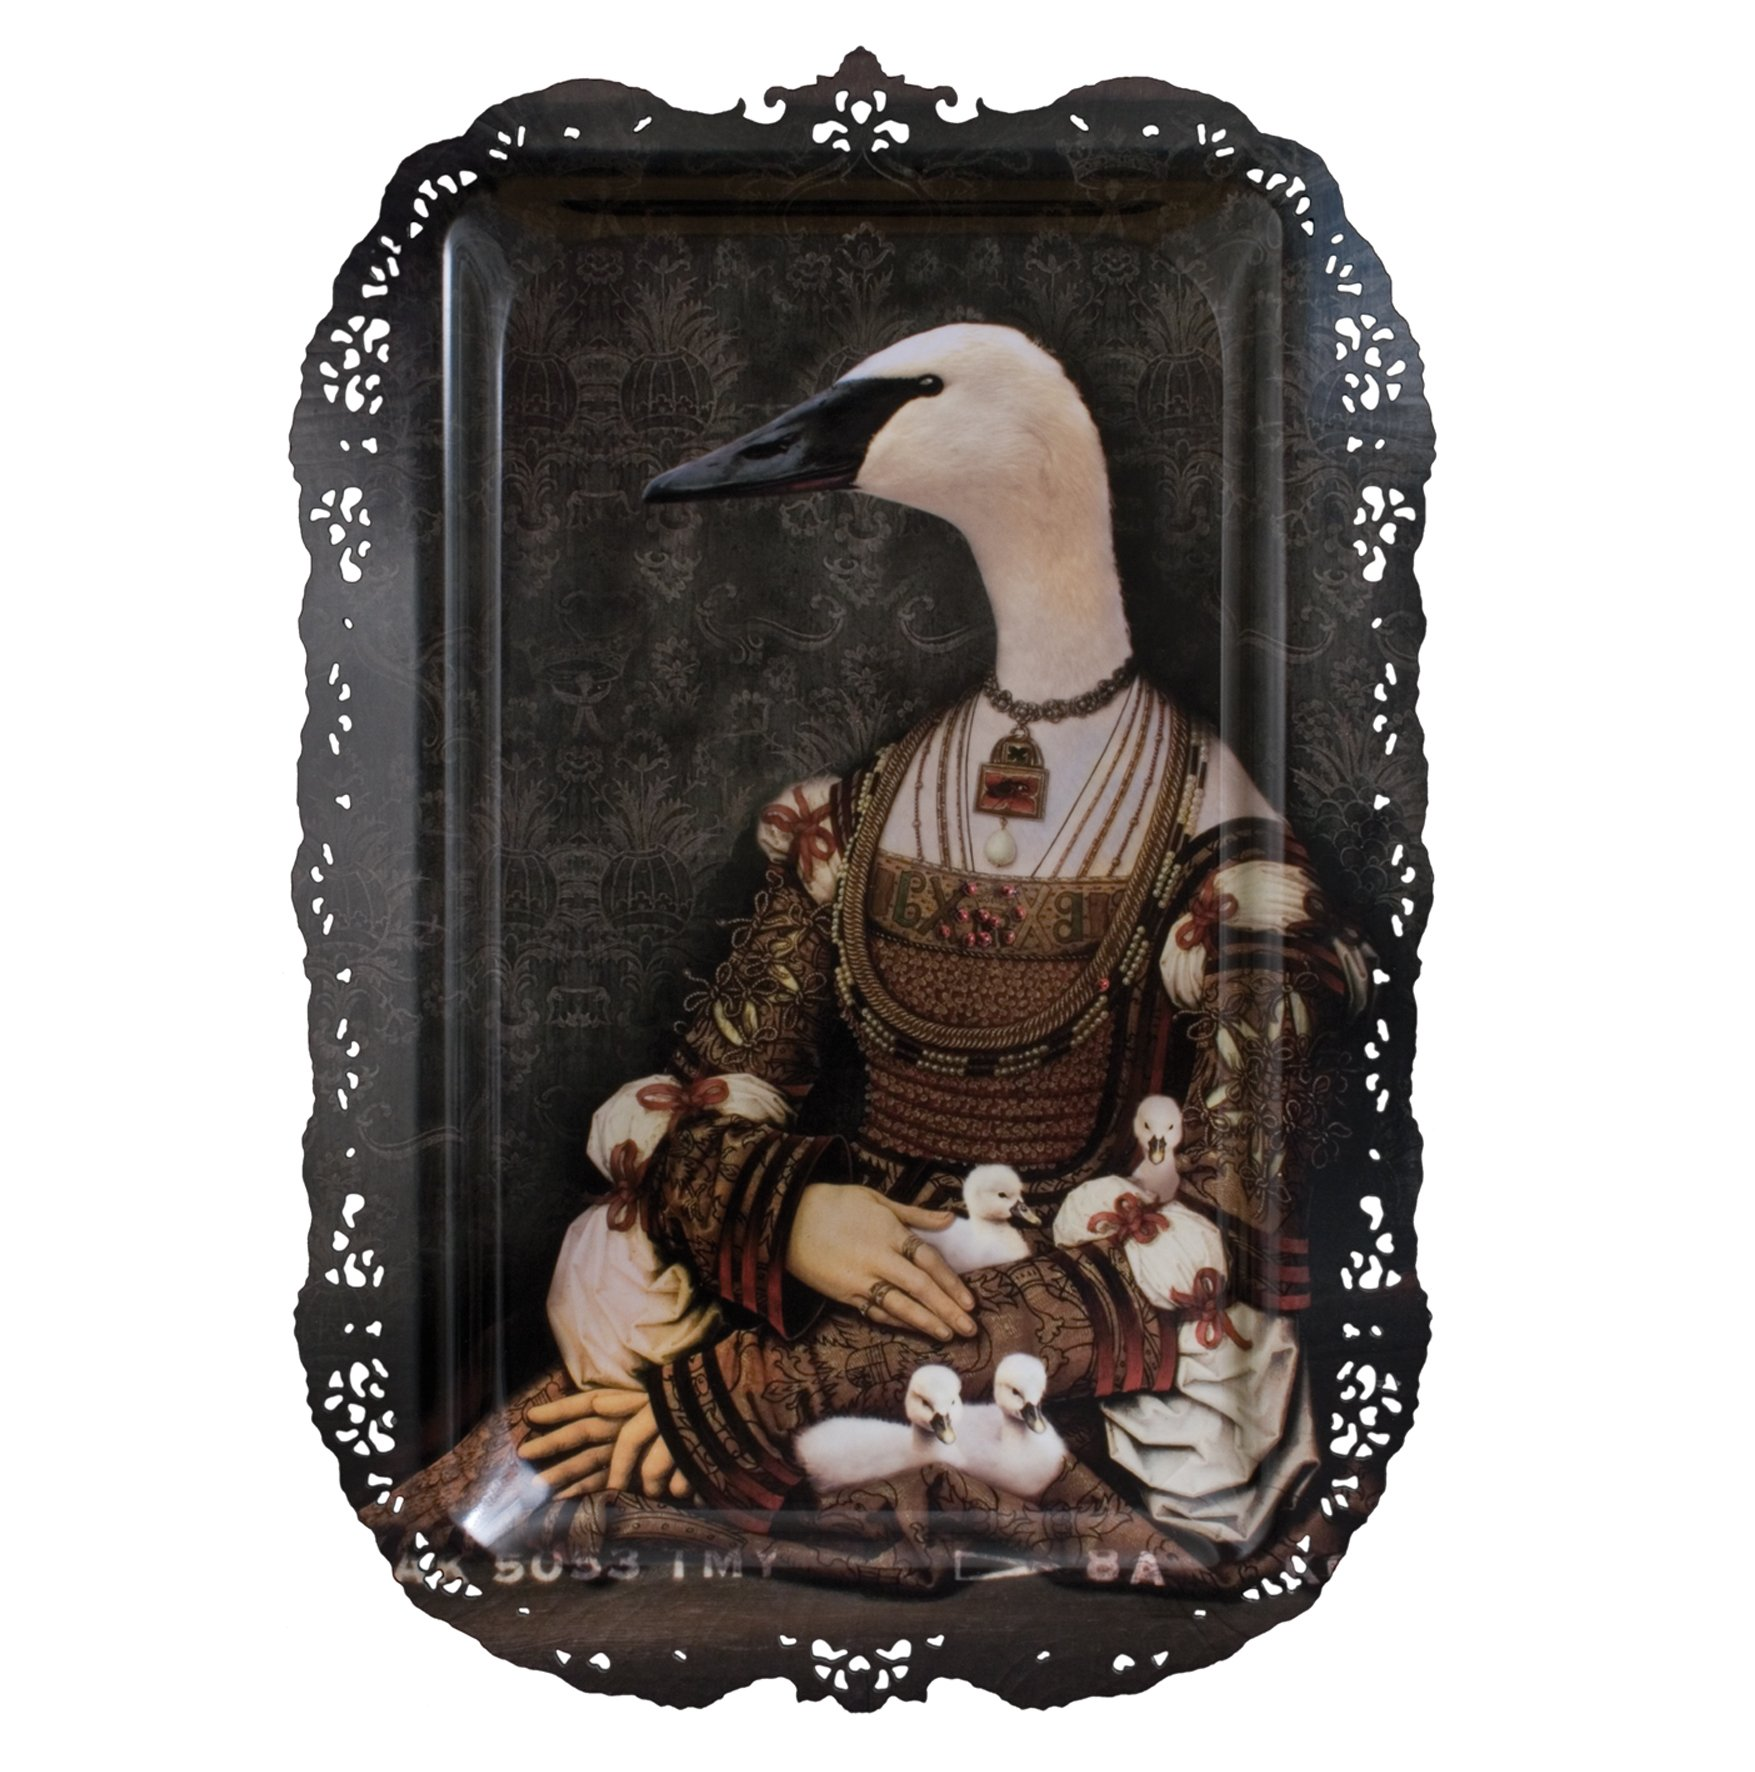 Bianca - Galerie De Portraits - Le grand theatre - Surreal Wall Tray Art Masterwork by iBride